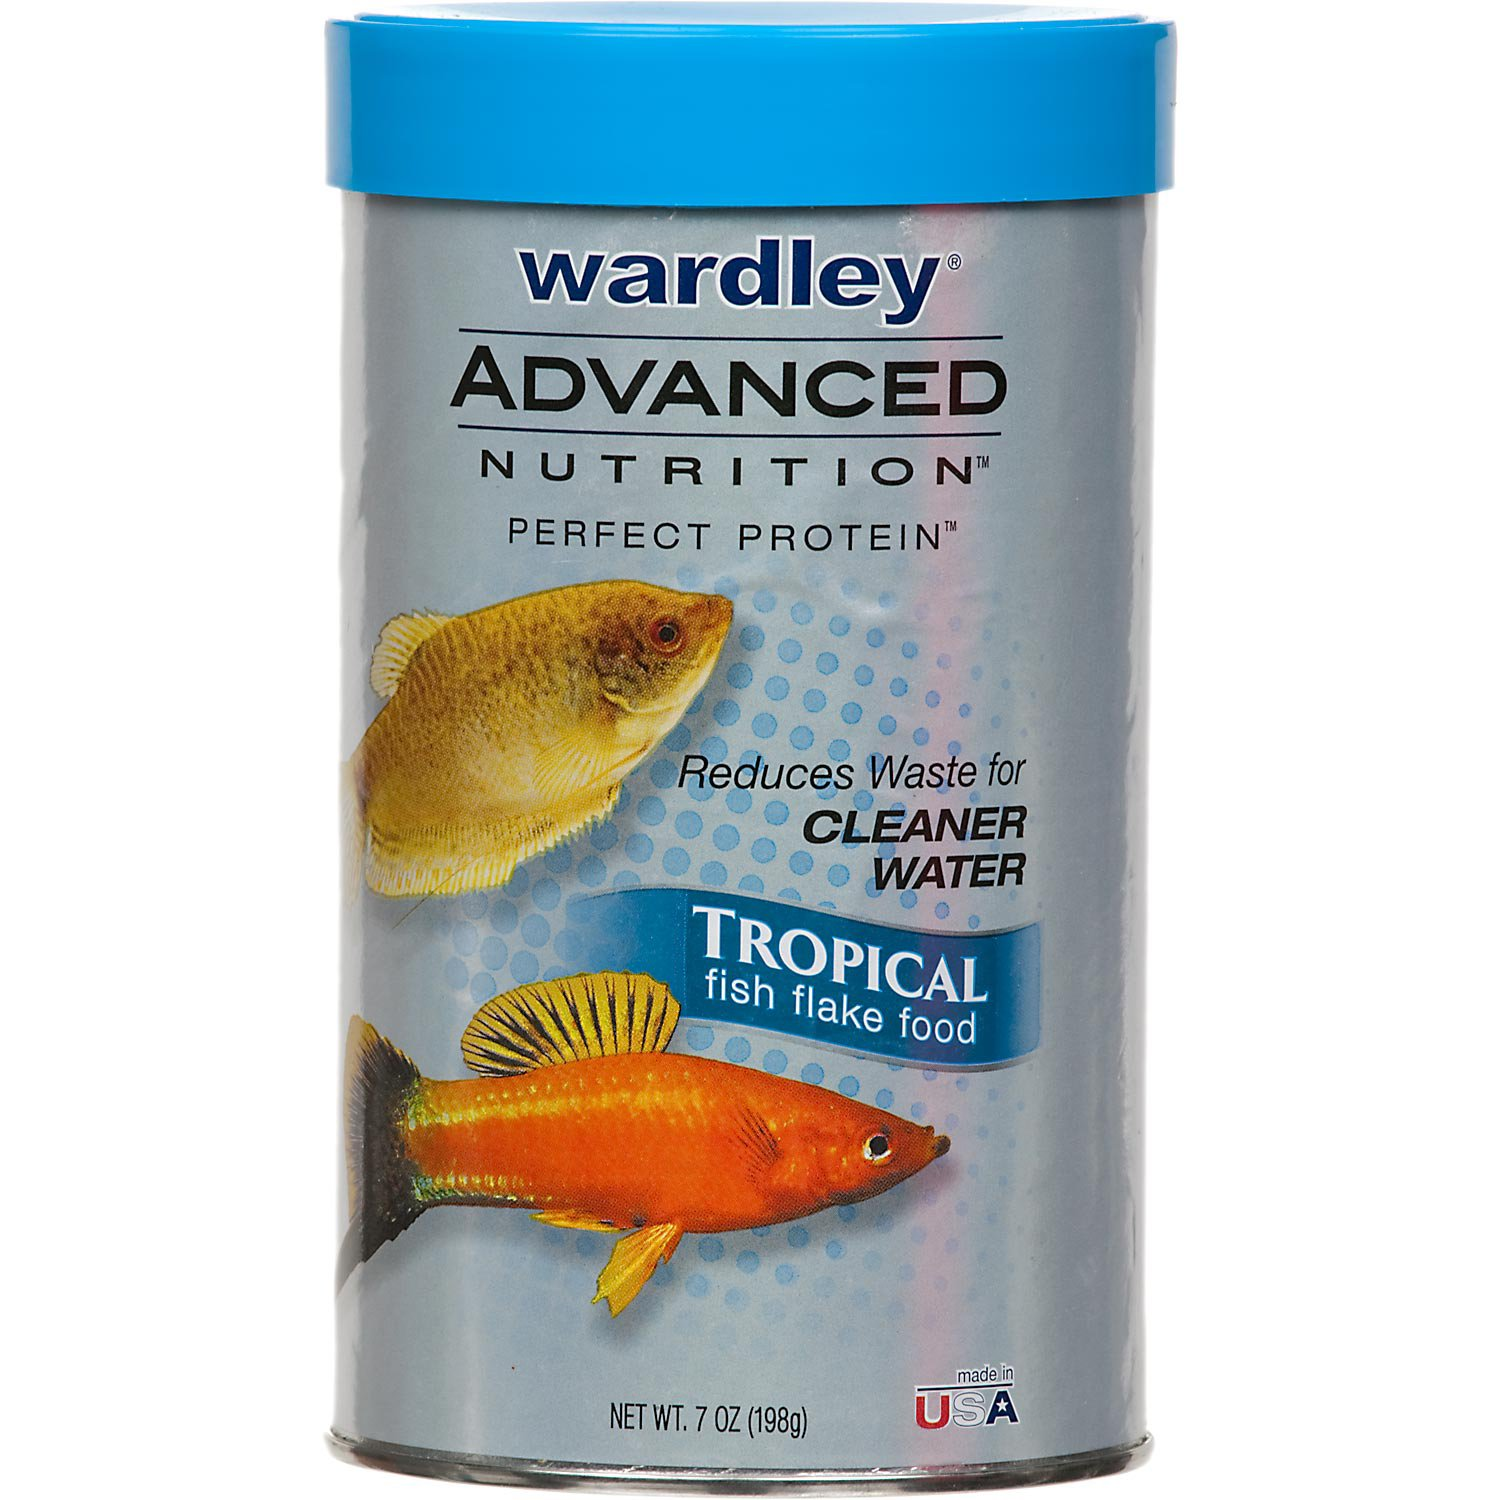 Freshwater fish nutrition - Wardley Advanced Nutrition Perfect Protein Tropical Fish Flake Food Petco